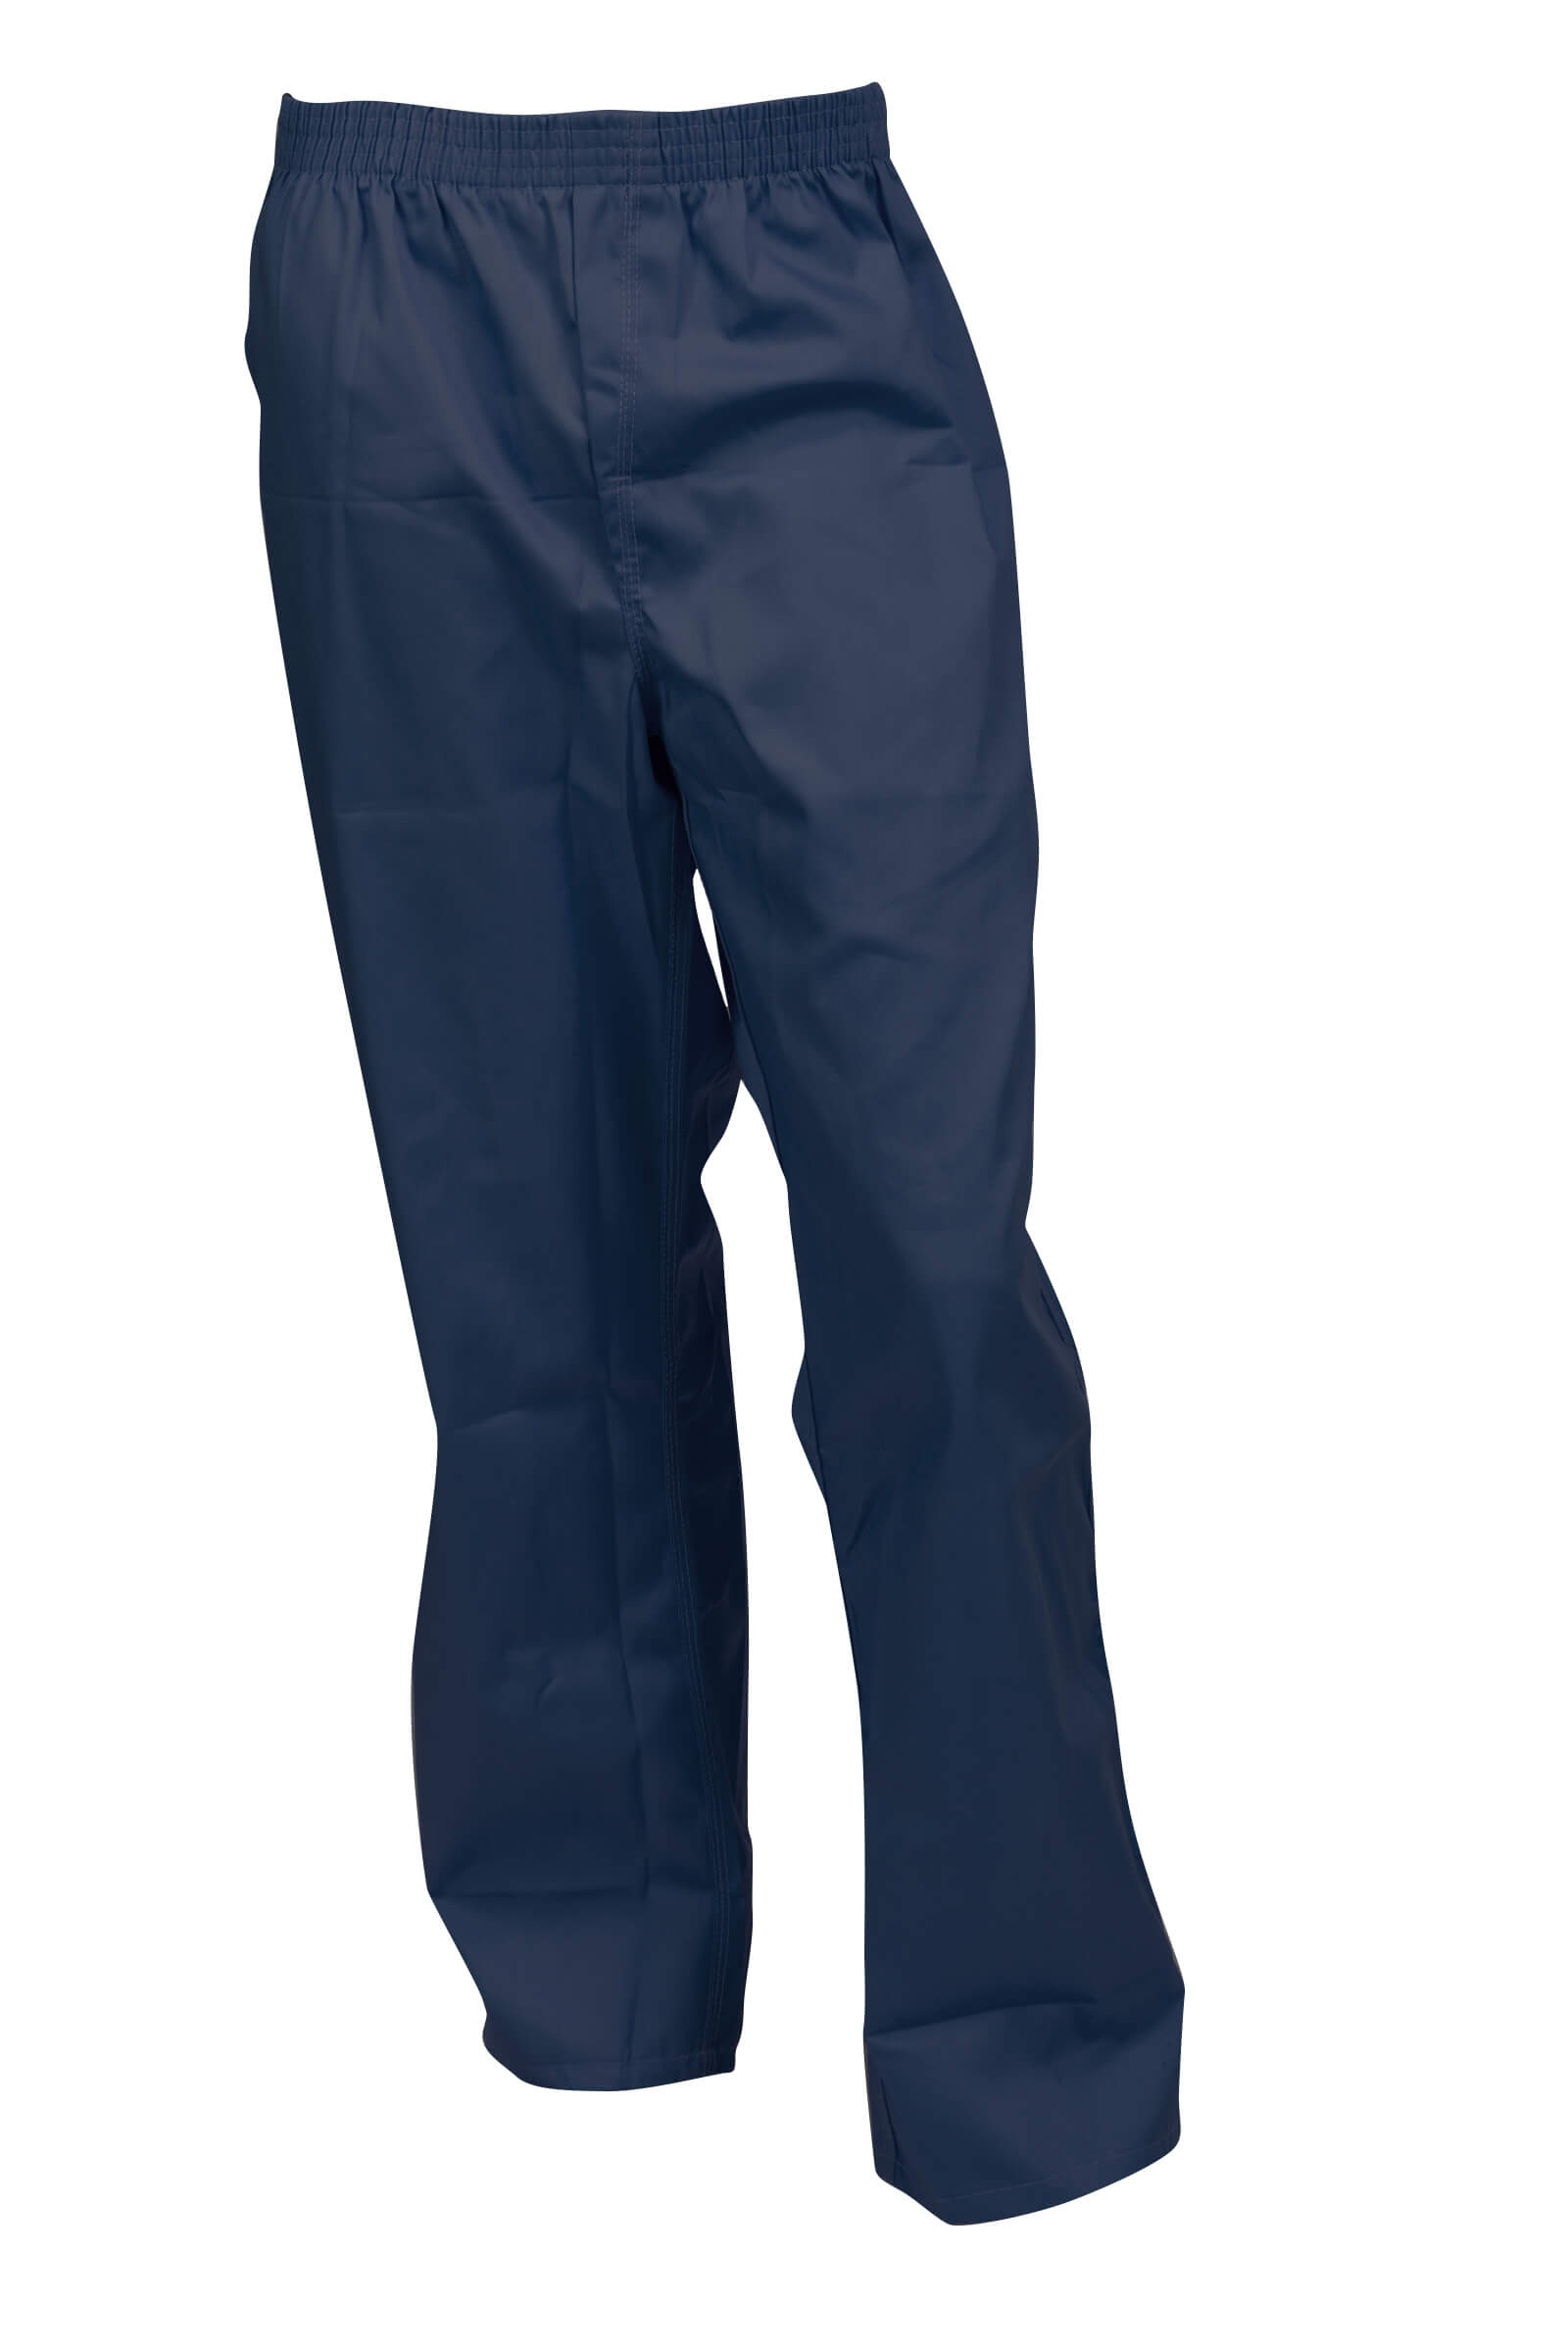 Solid Color Inmate Pants